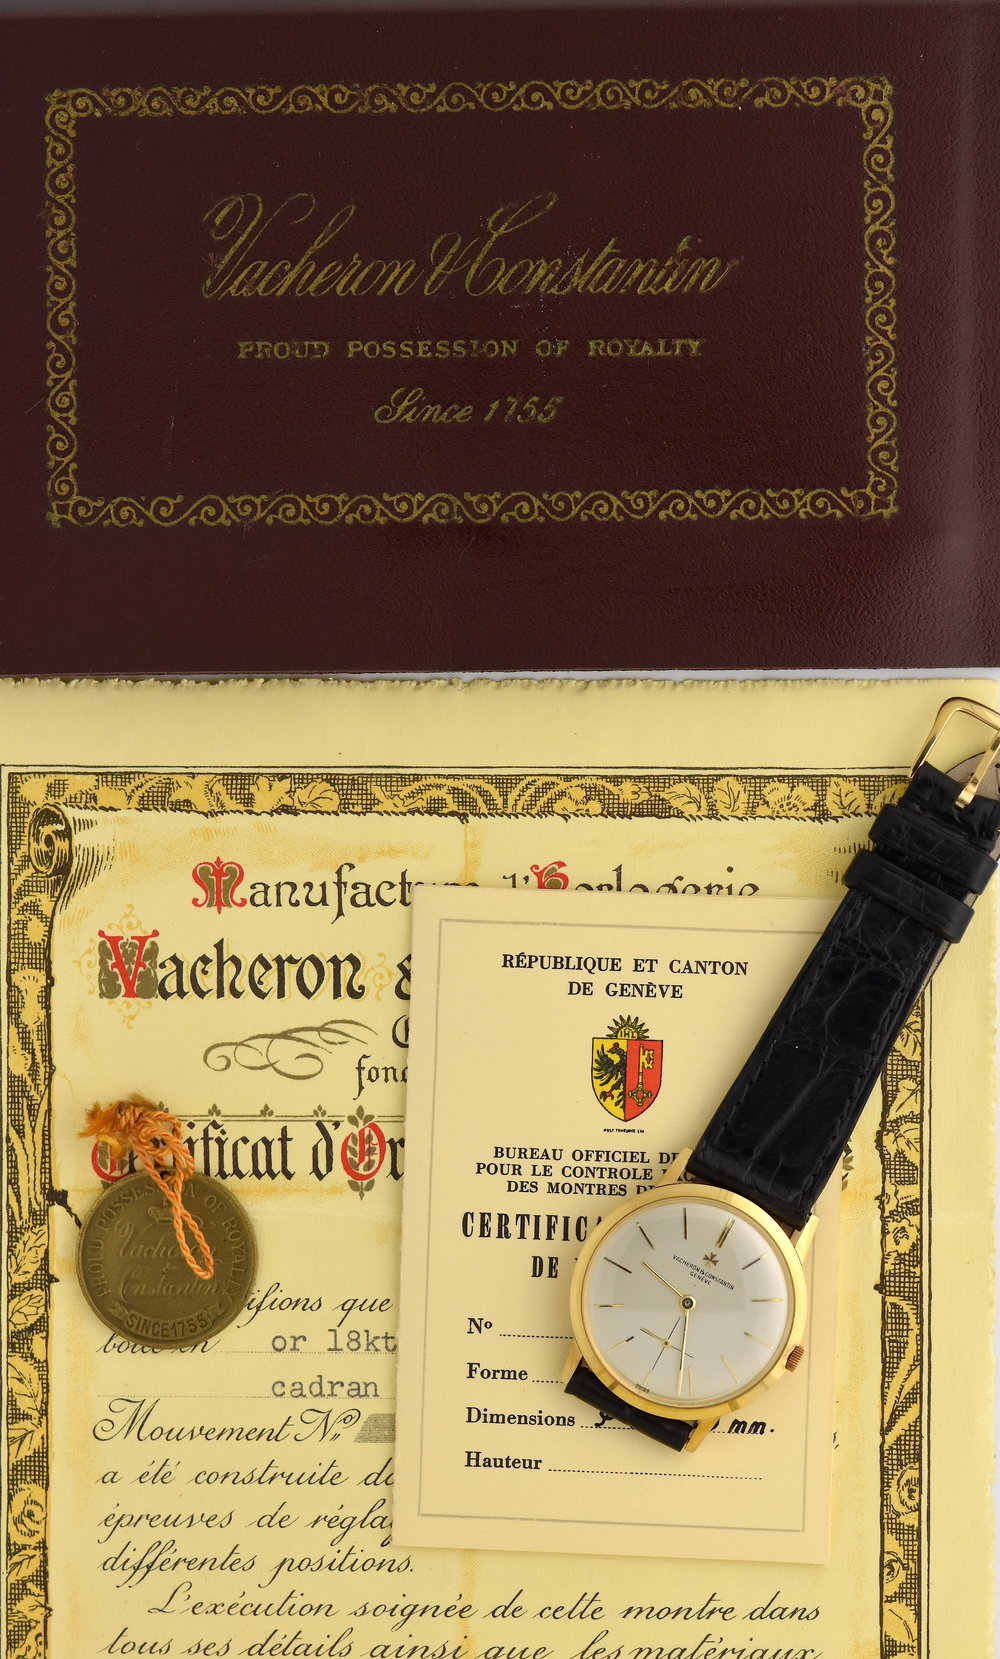 vacheron-conatantin-box-papers-1001-6273